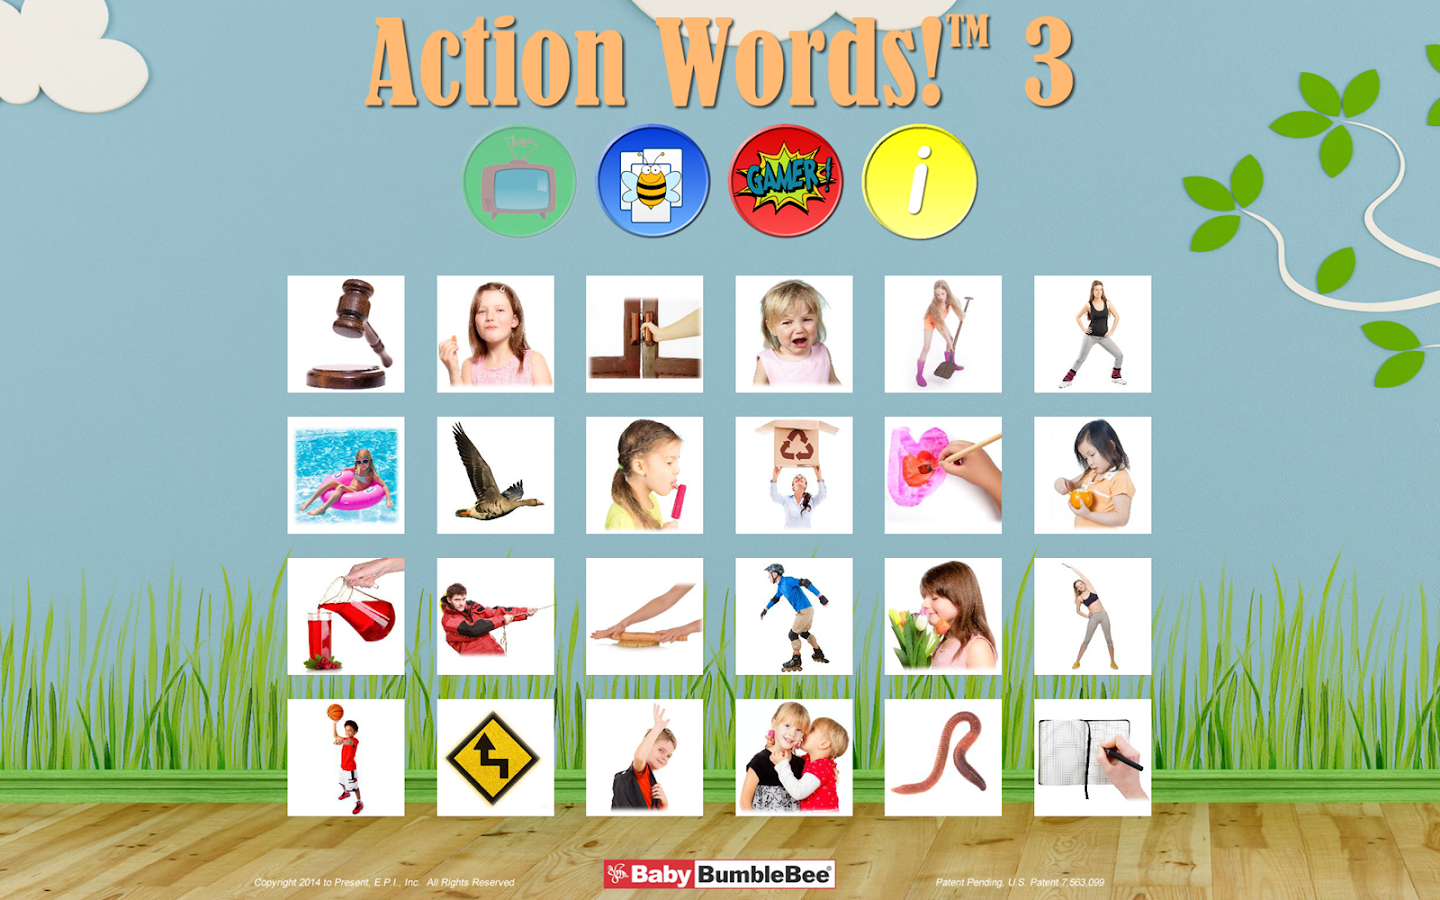 action words flashcards android apps on google play action words 3 flashcards screenshot